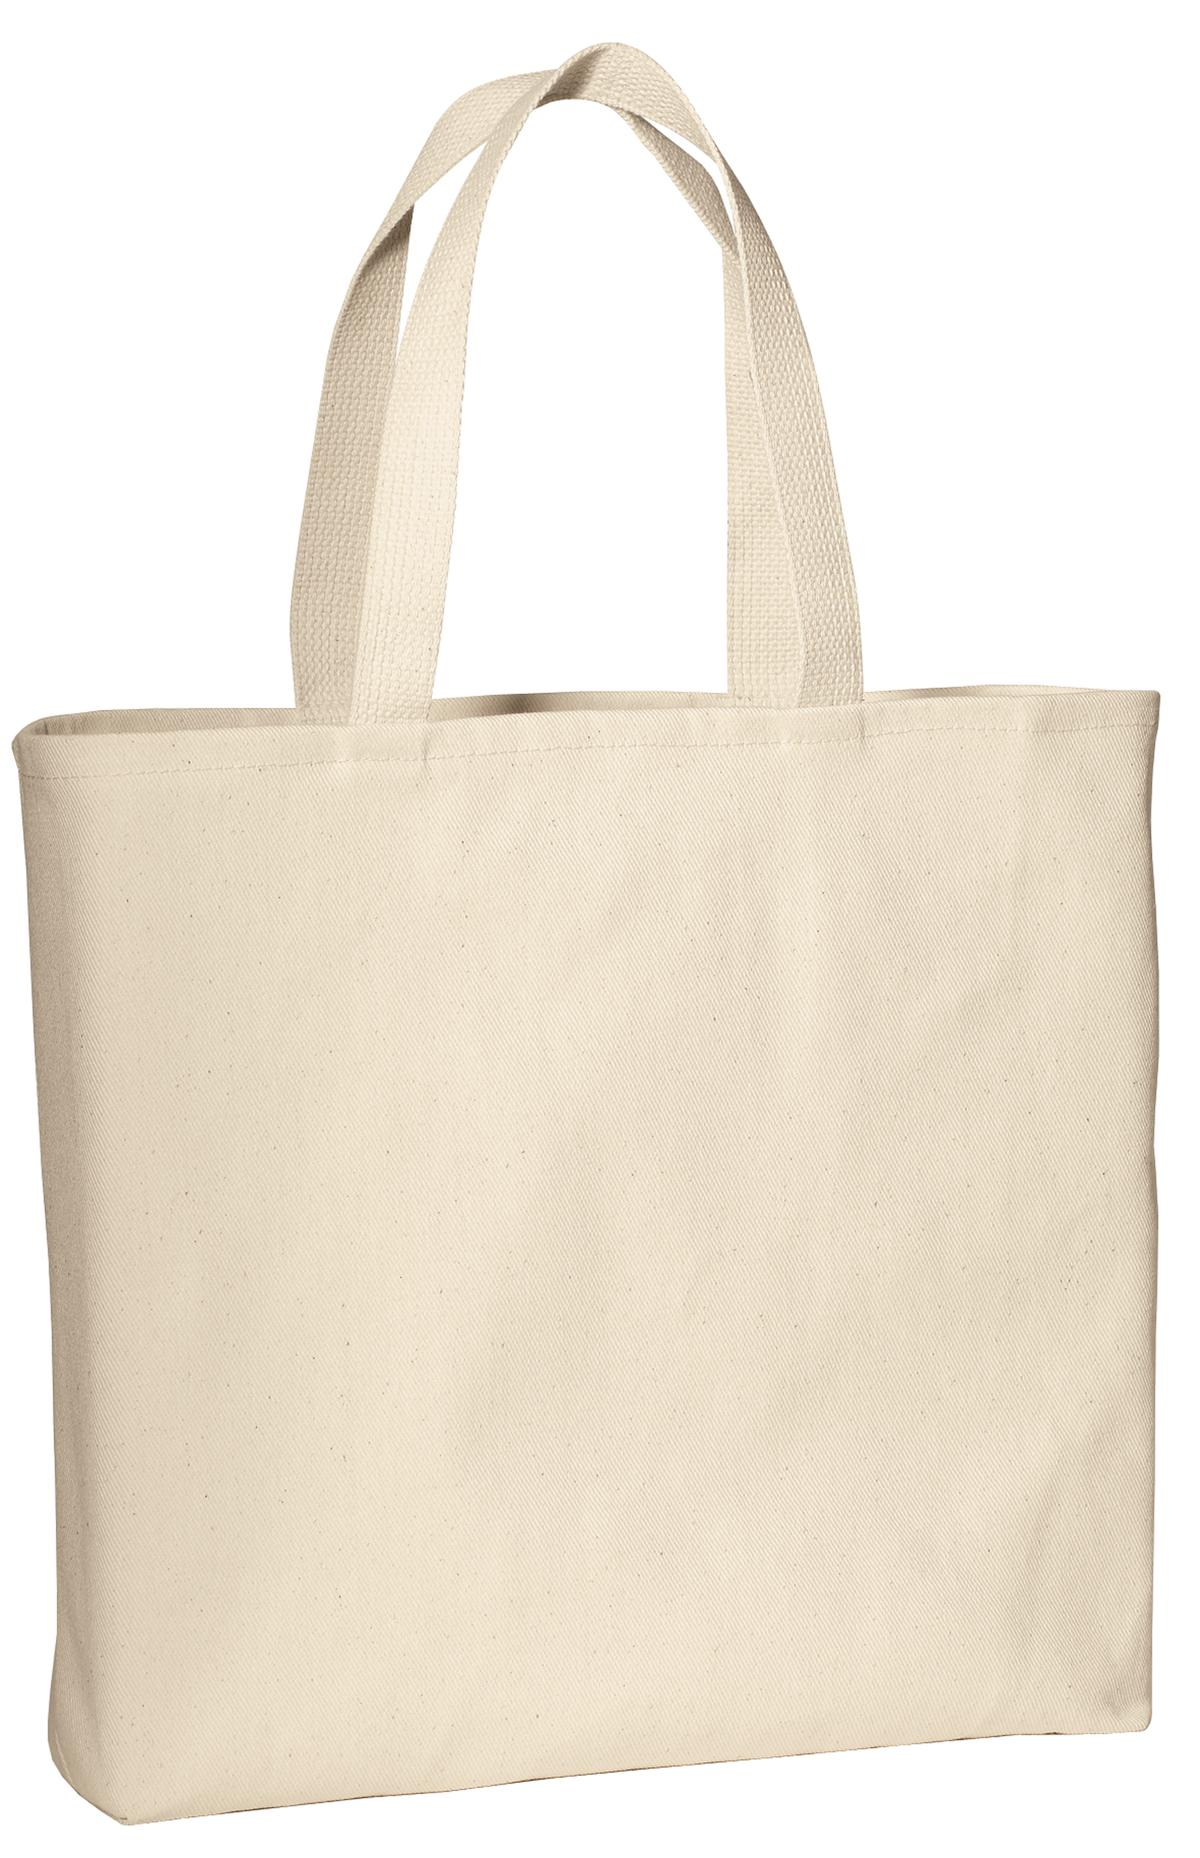 Port Authority ®  - Convention Tote.  B050 - Natural